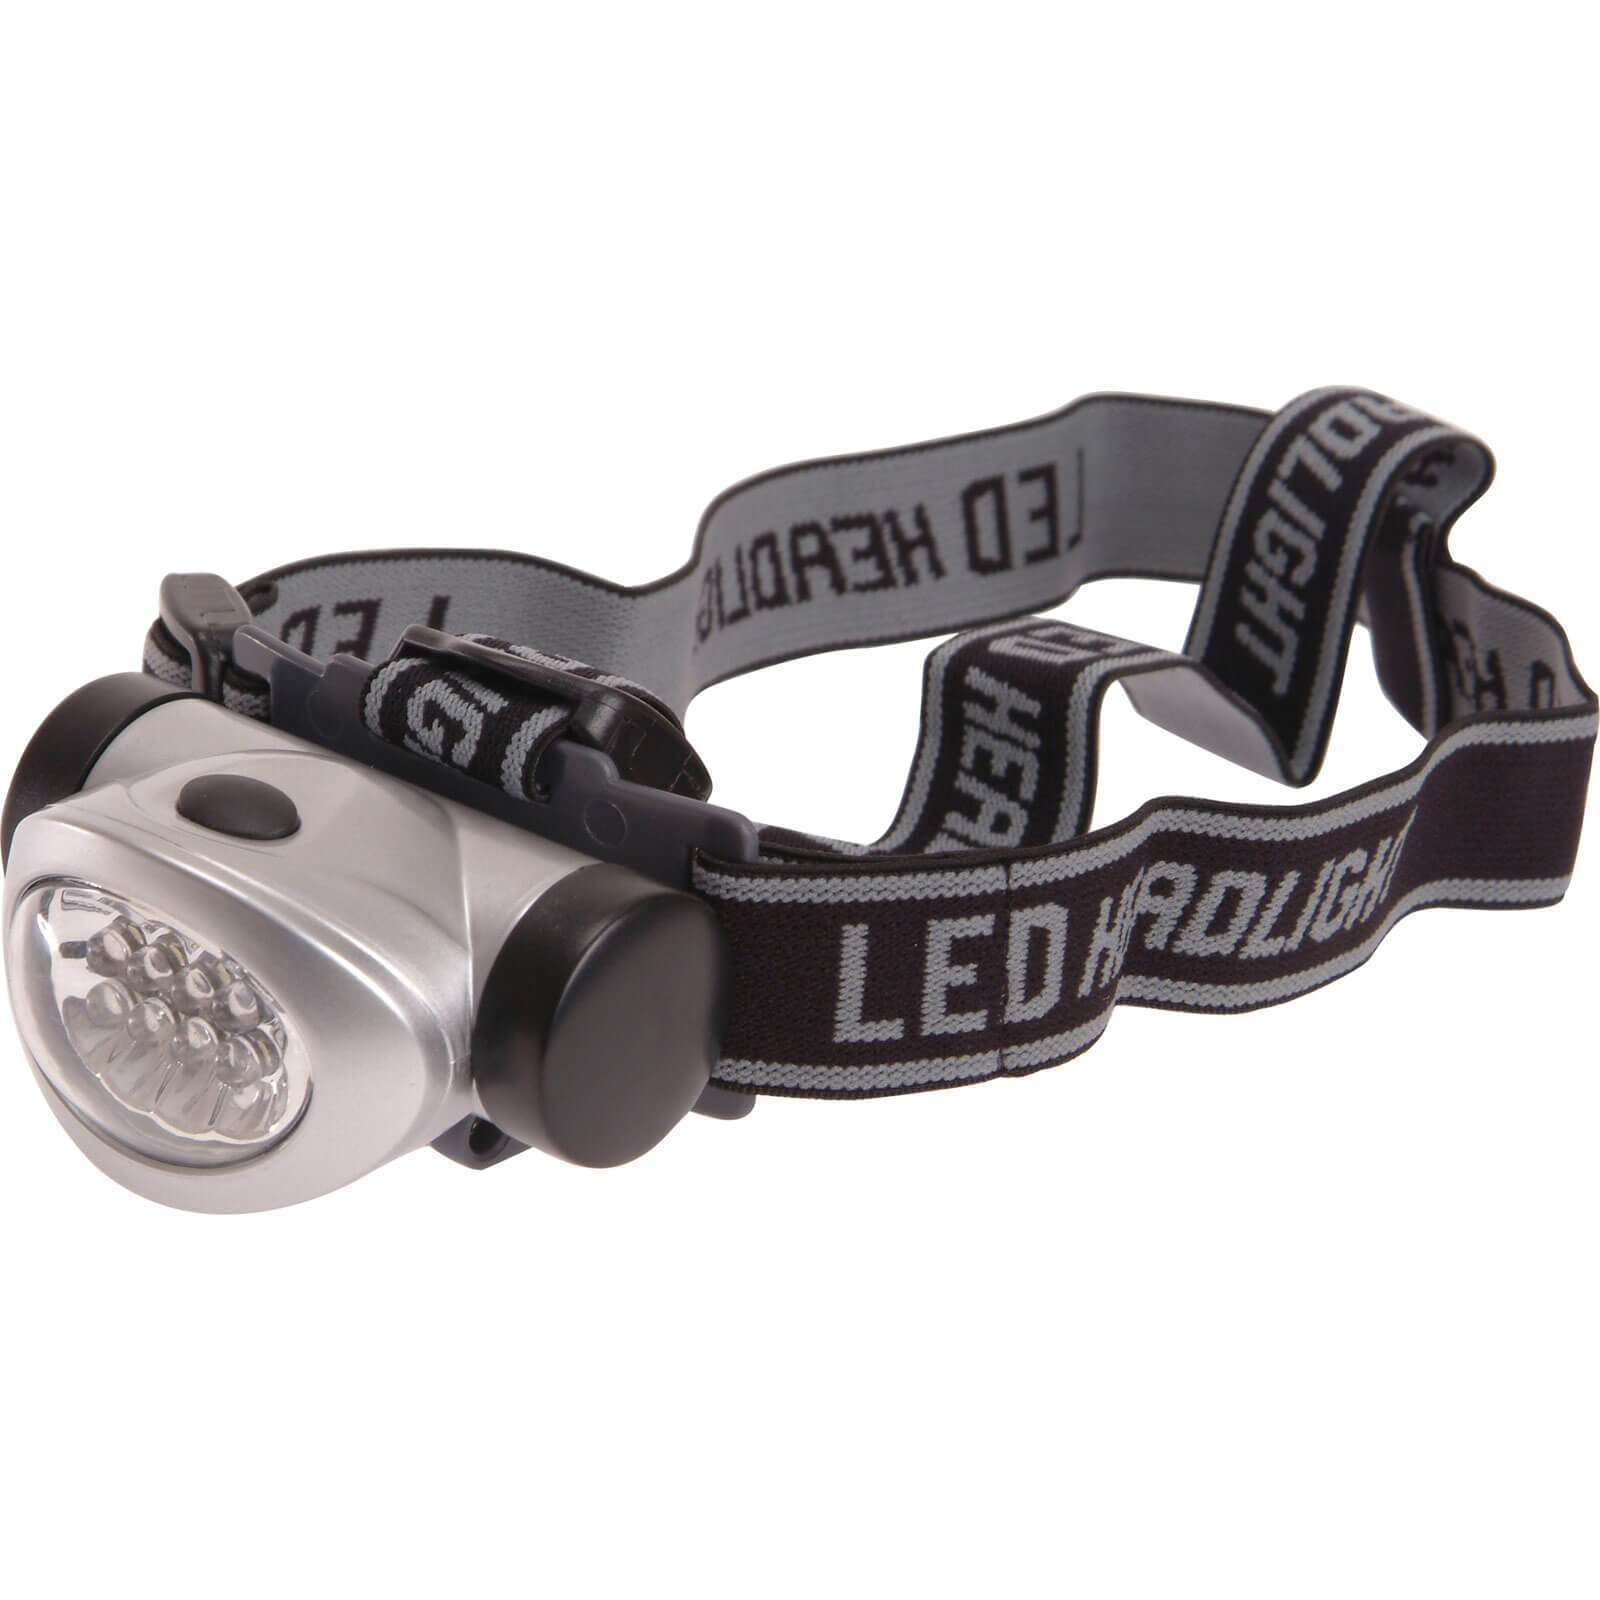 Image of Lighthouse 8 LED Head Torch 3 Function Silver